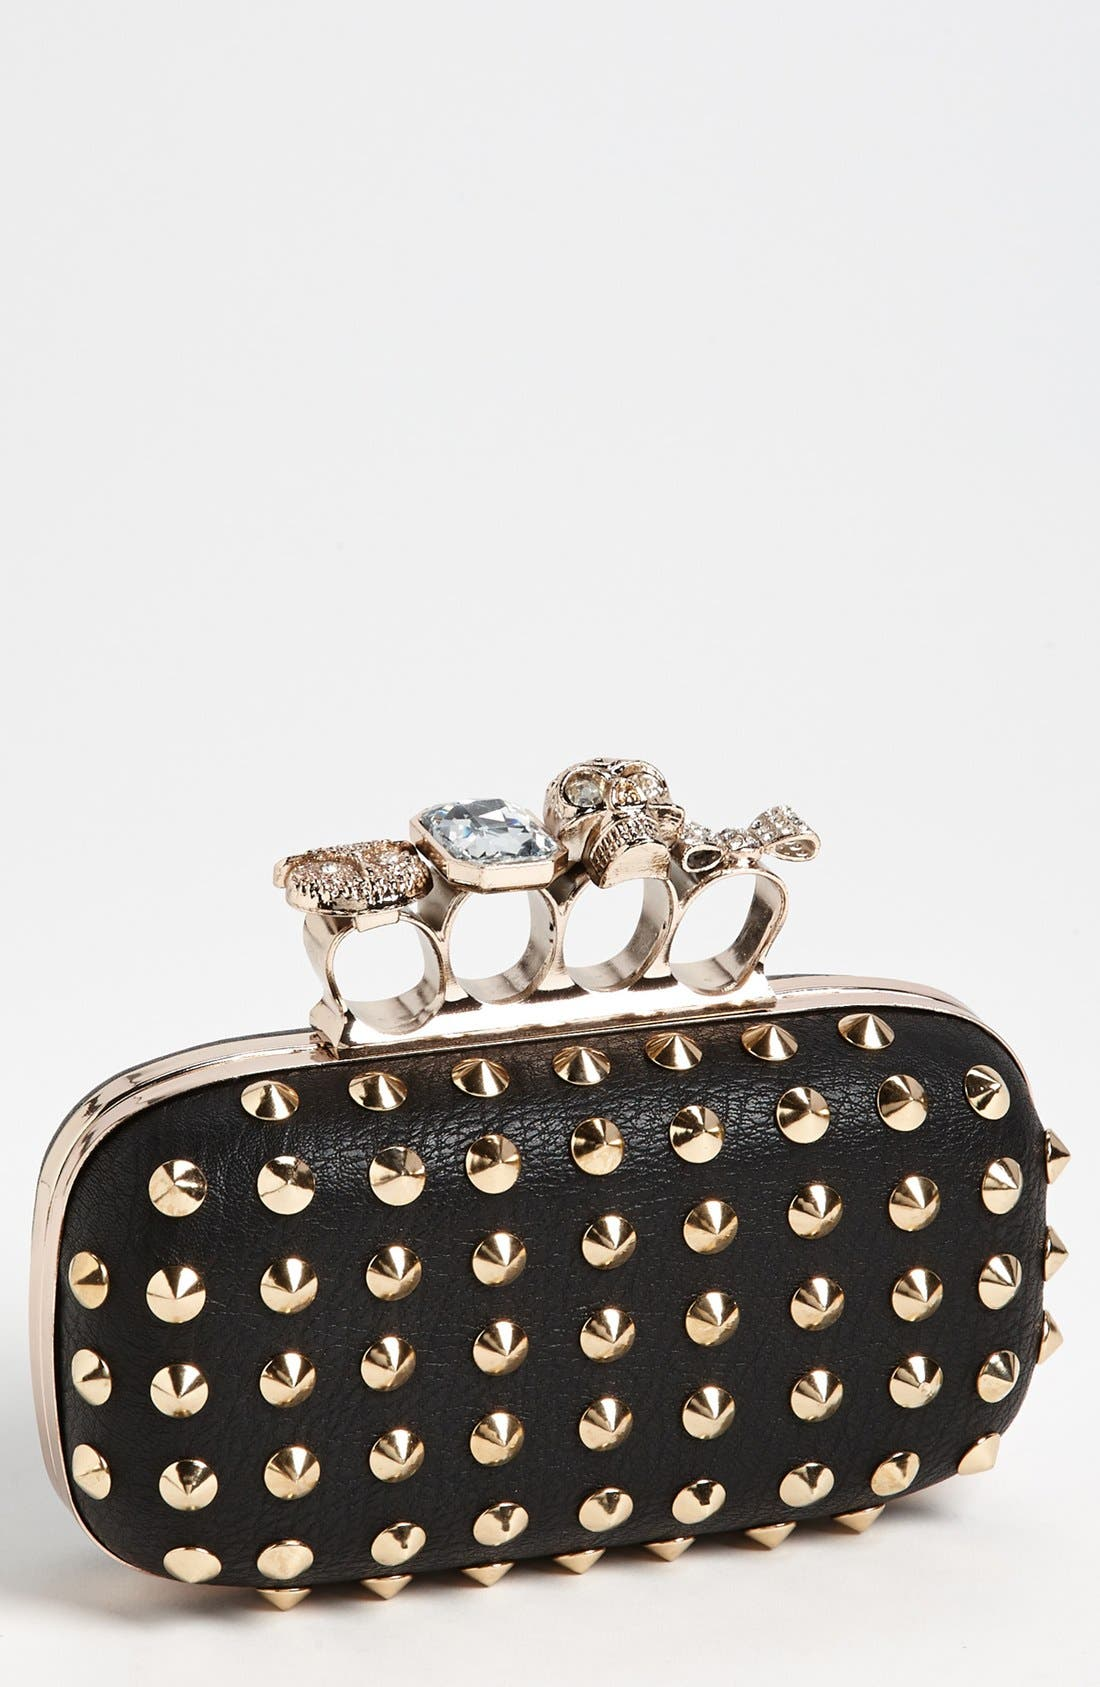 Alternate Image 1 Selected - Natasha Couture 'Finger' Studded Clutch